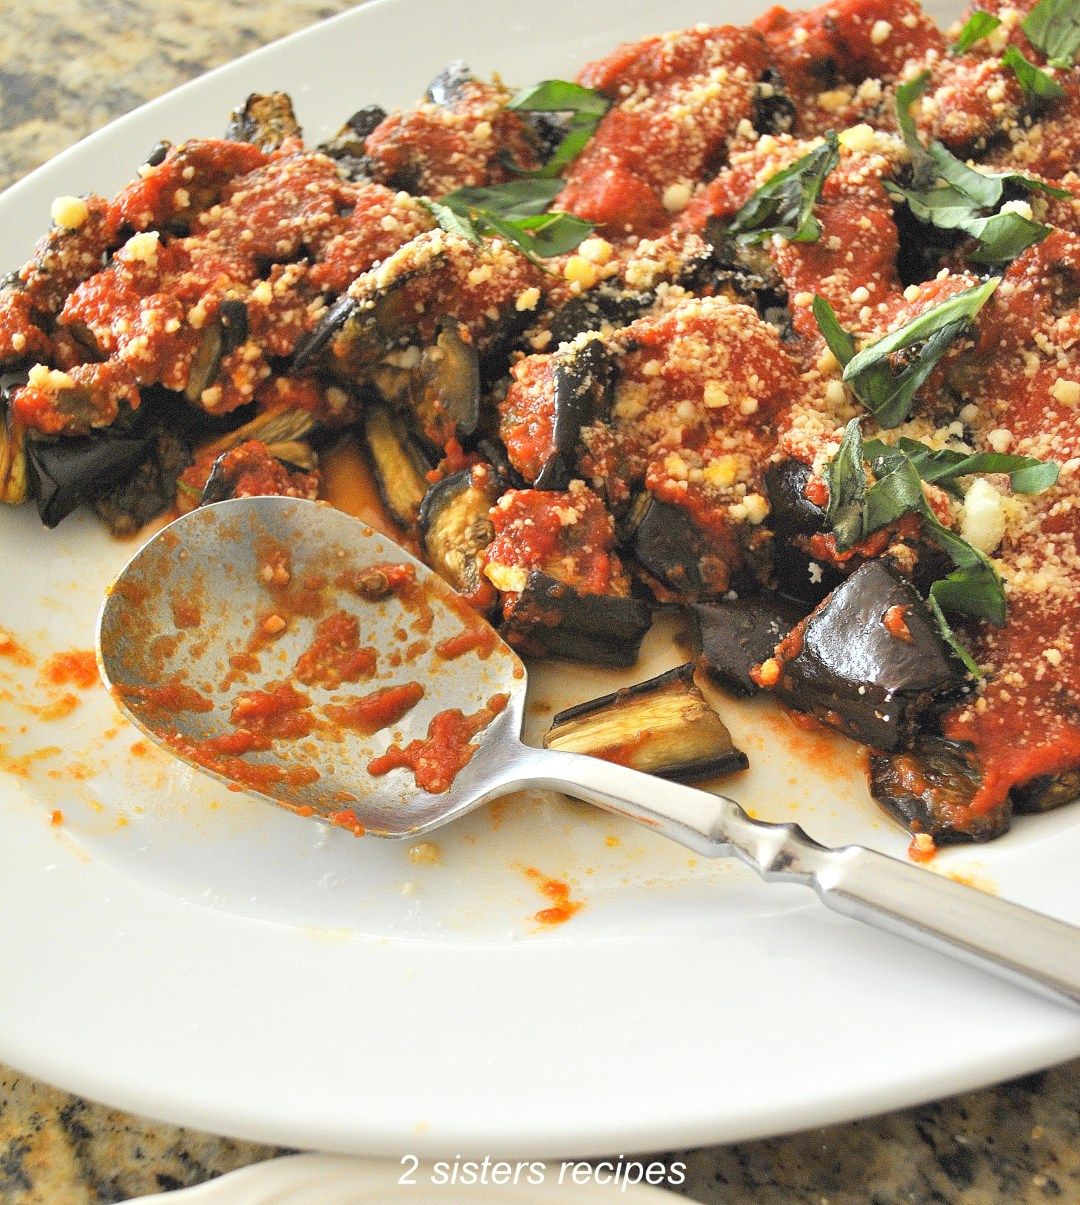 Roasted Eggplant Parm - Lightened! by 2sistersrecipes.com